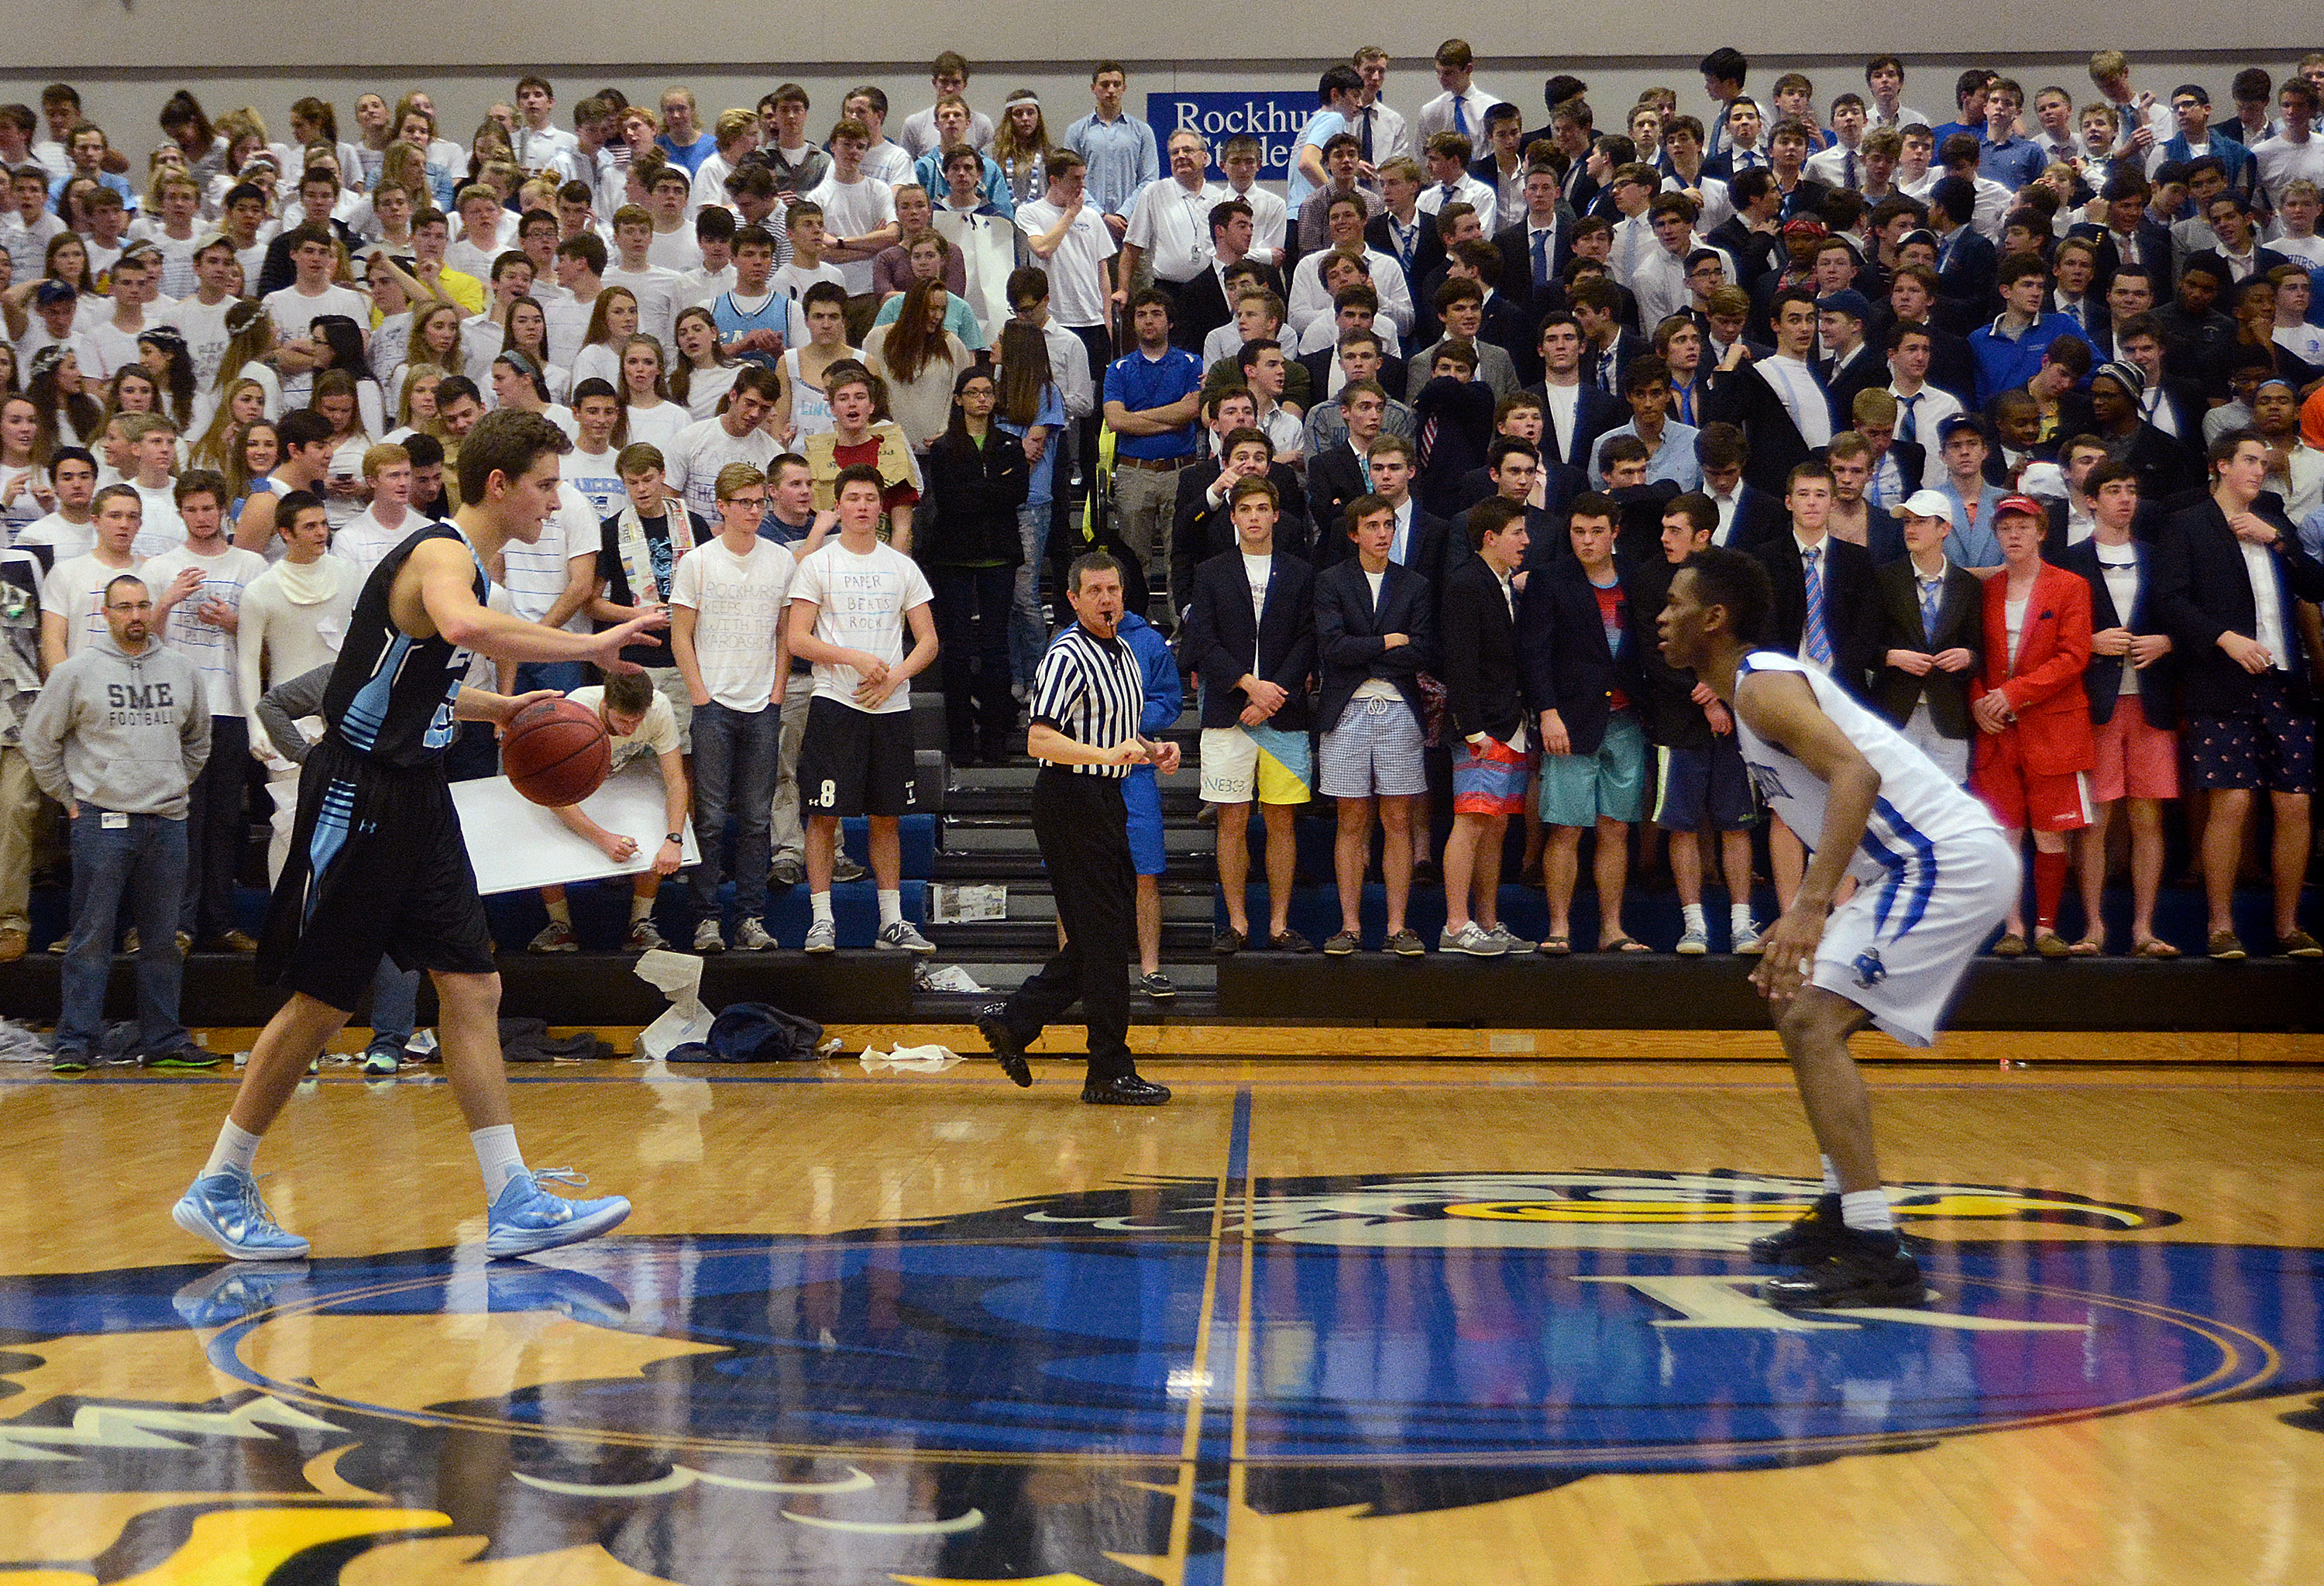 Soundslide: Boy's Basketball vs. Rockhurst